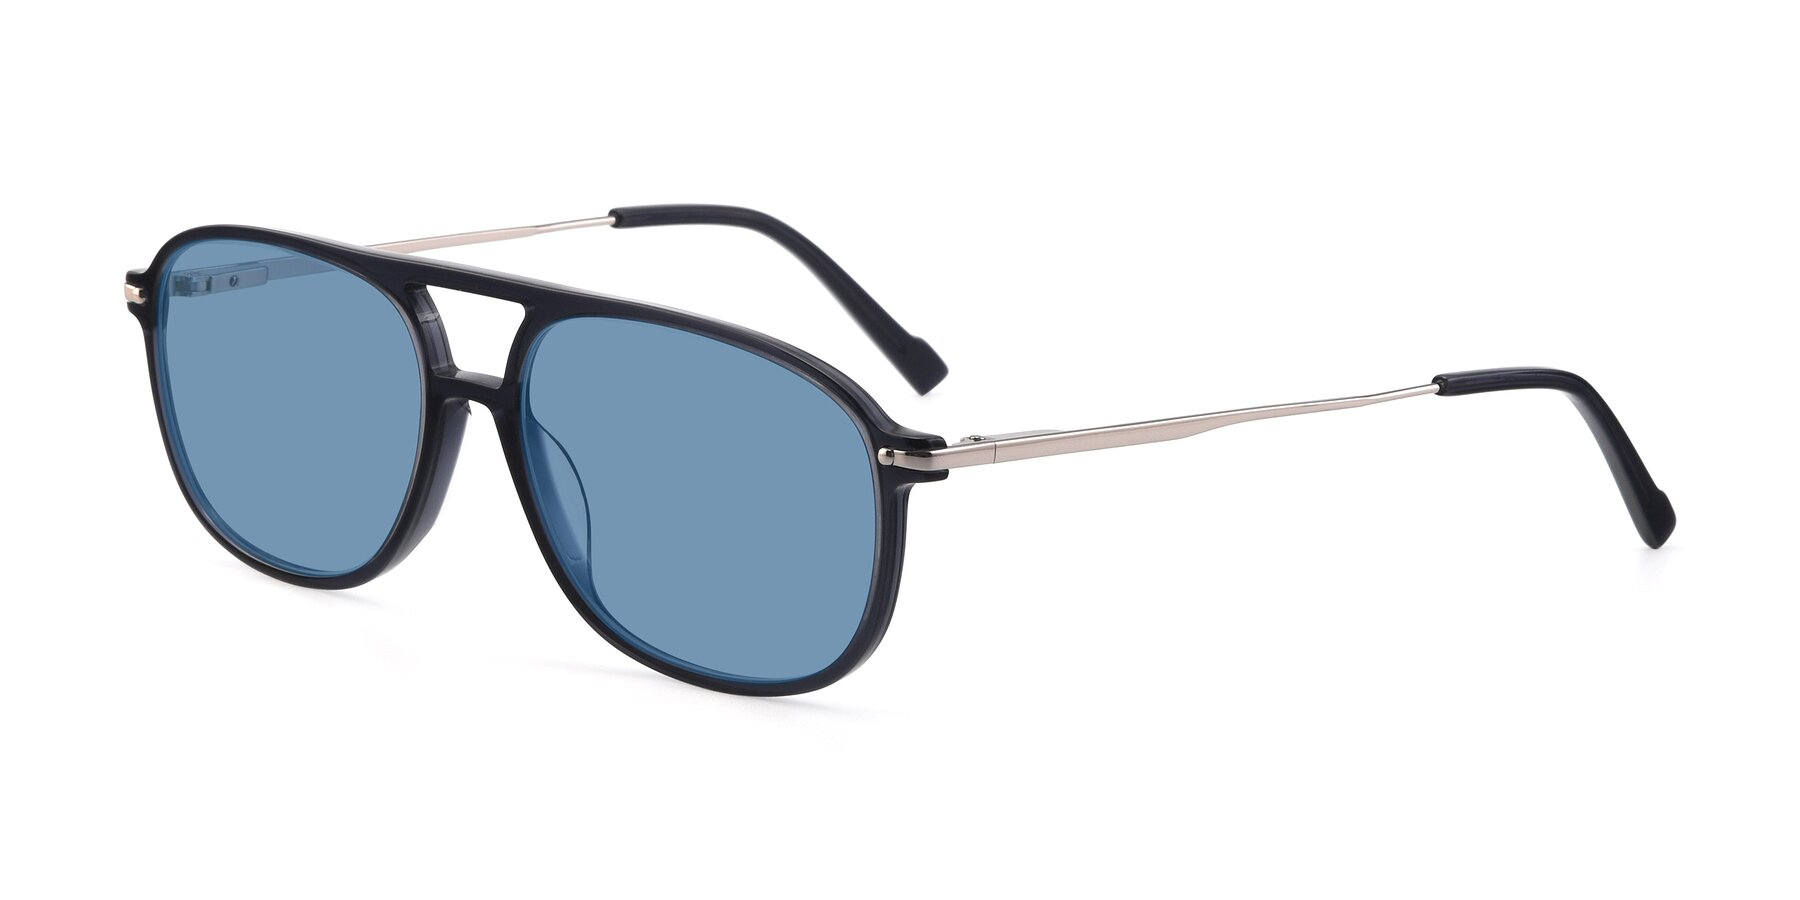 Angle of 17580 in Dark Bluish Gray with Medium Blue Tinted Lenses